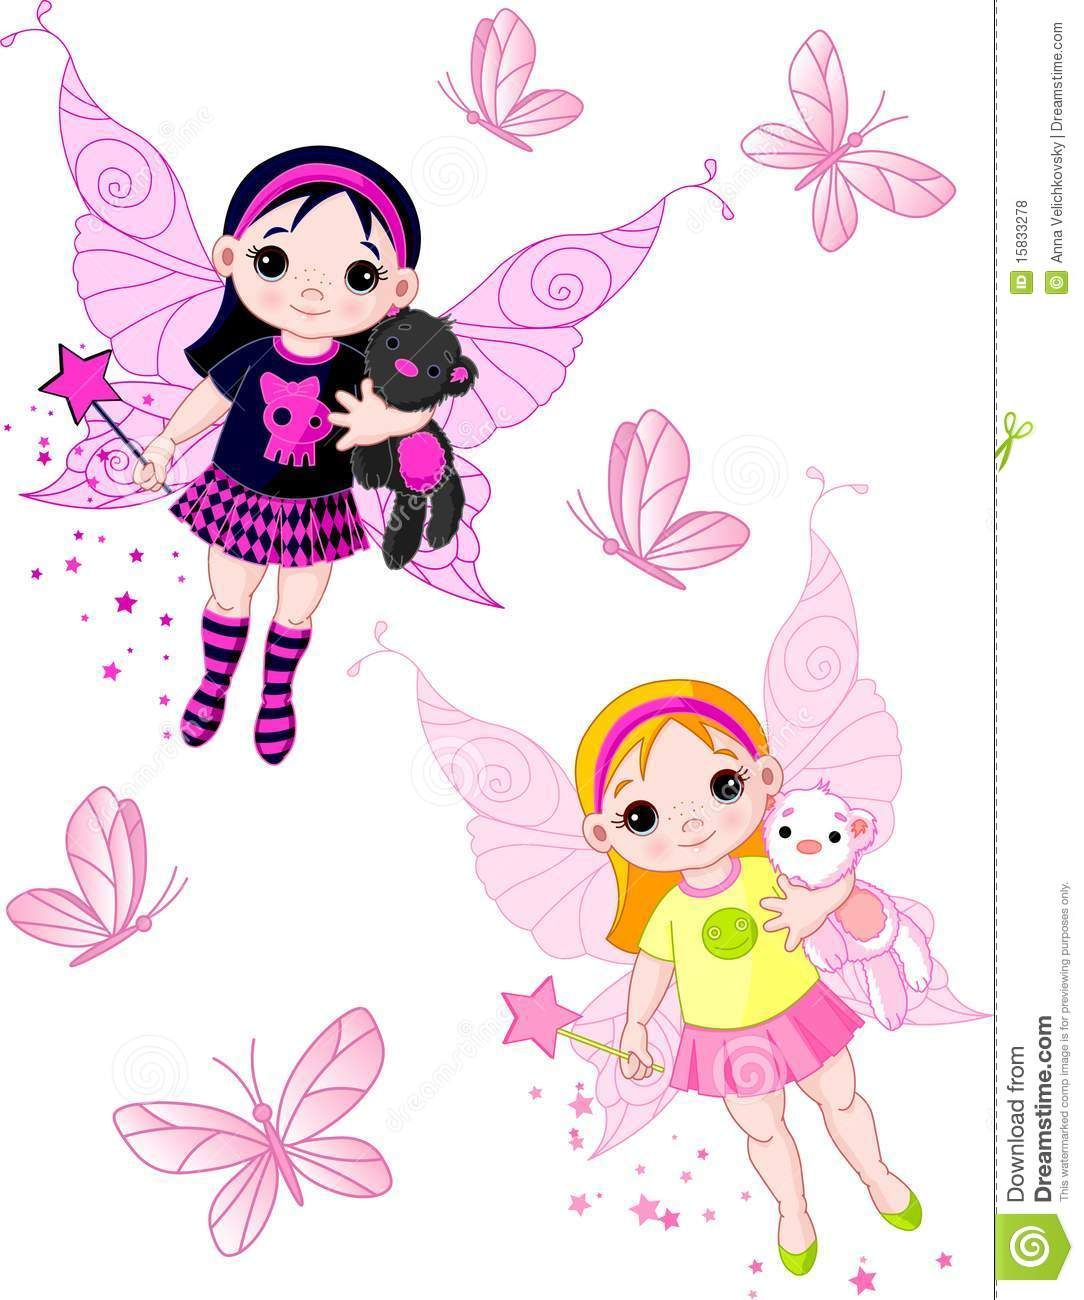 Little Fairies Flying With Butterflies Royalty Free Stock Photos ...